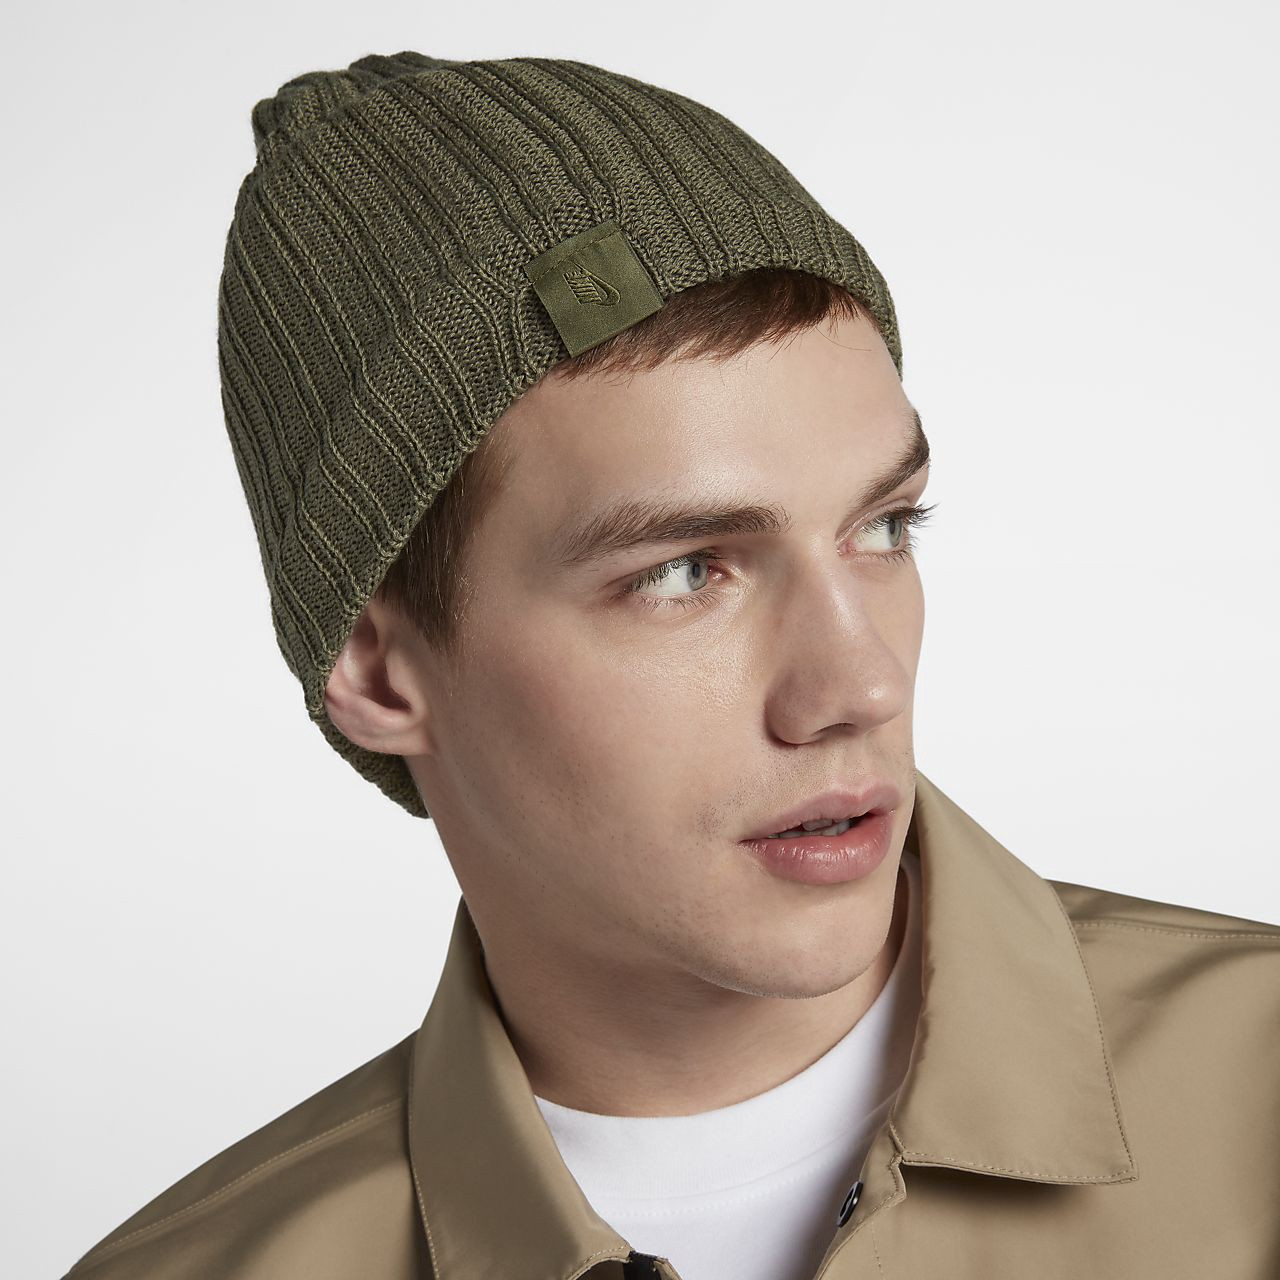 Nike Lab Collection Beanie Unisex Knit Hat - One Size Medium Olive Olive  Canvas 0ad93f1e00a3